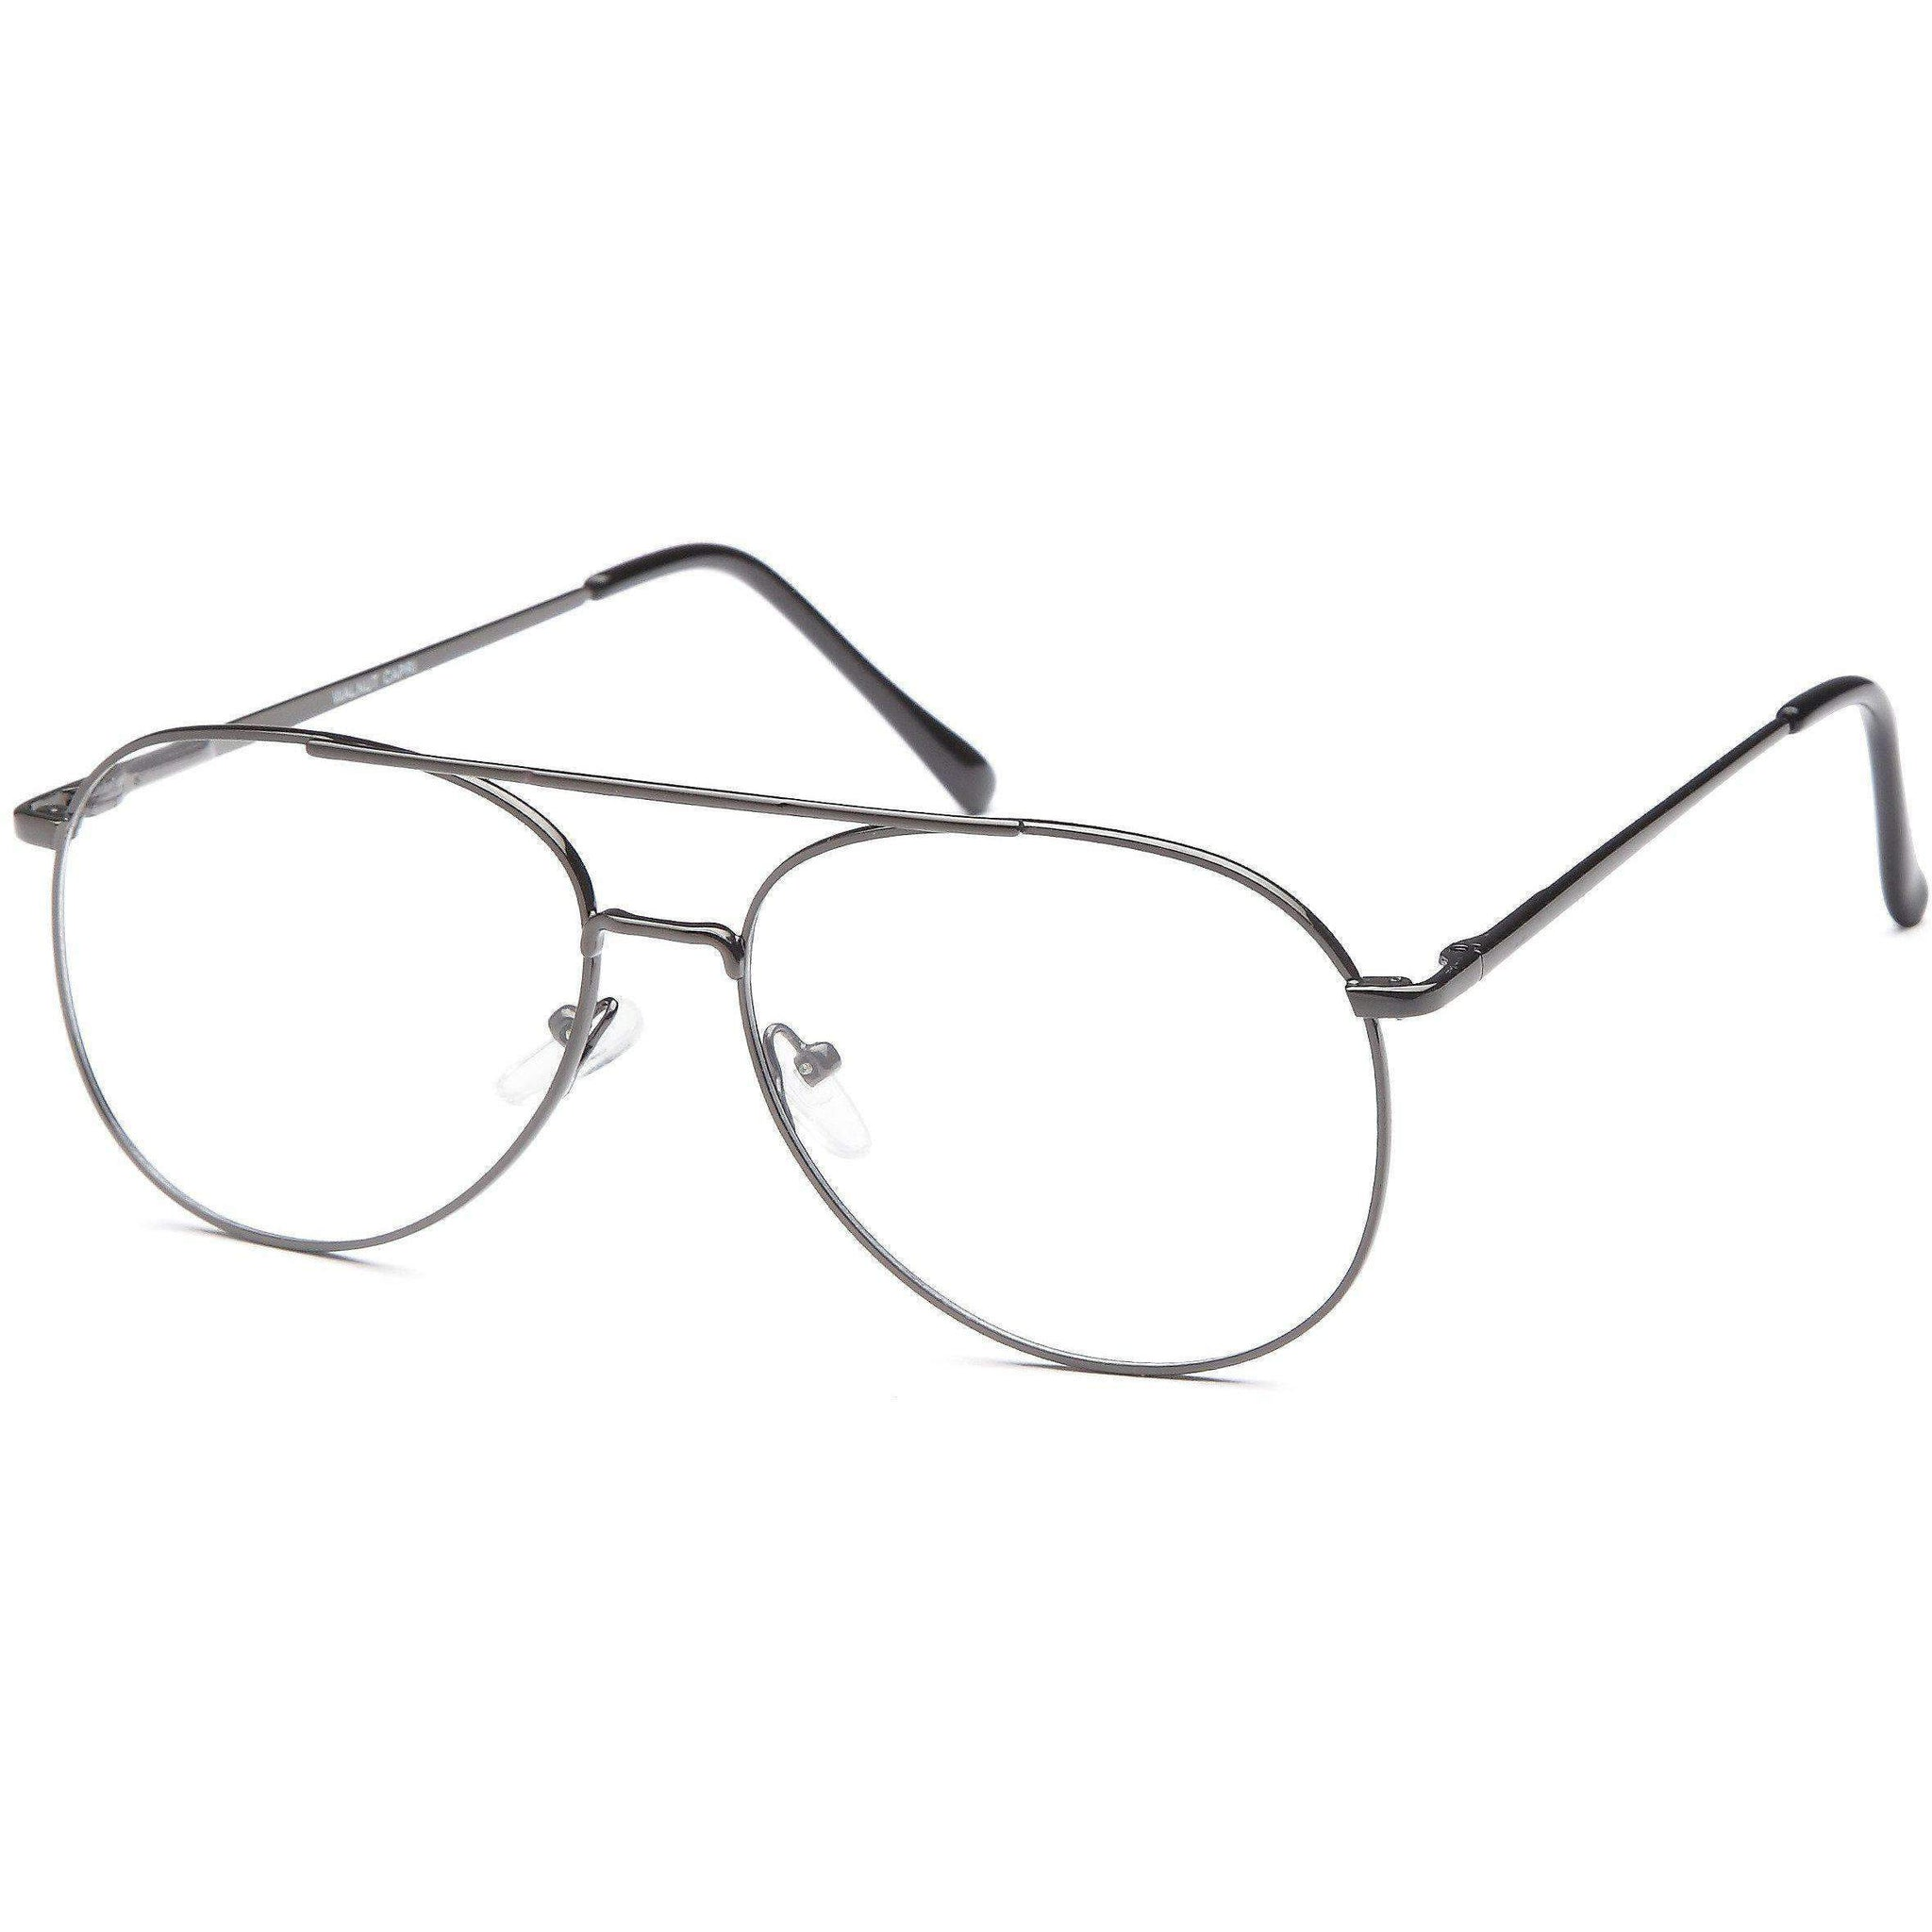 Appletree Prescription Glasses WALNUT Eyeglasses Frame